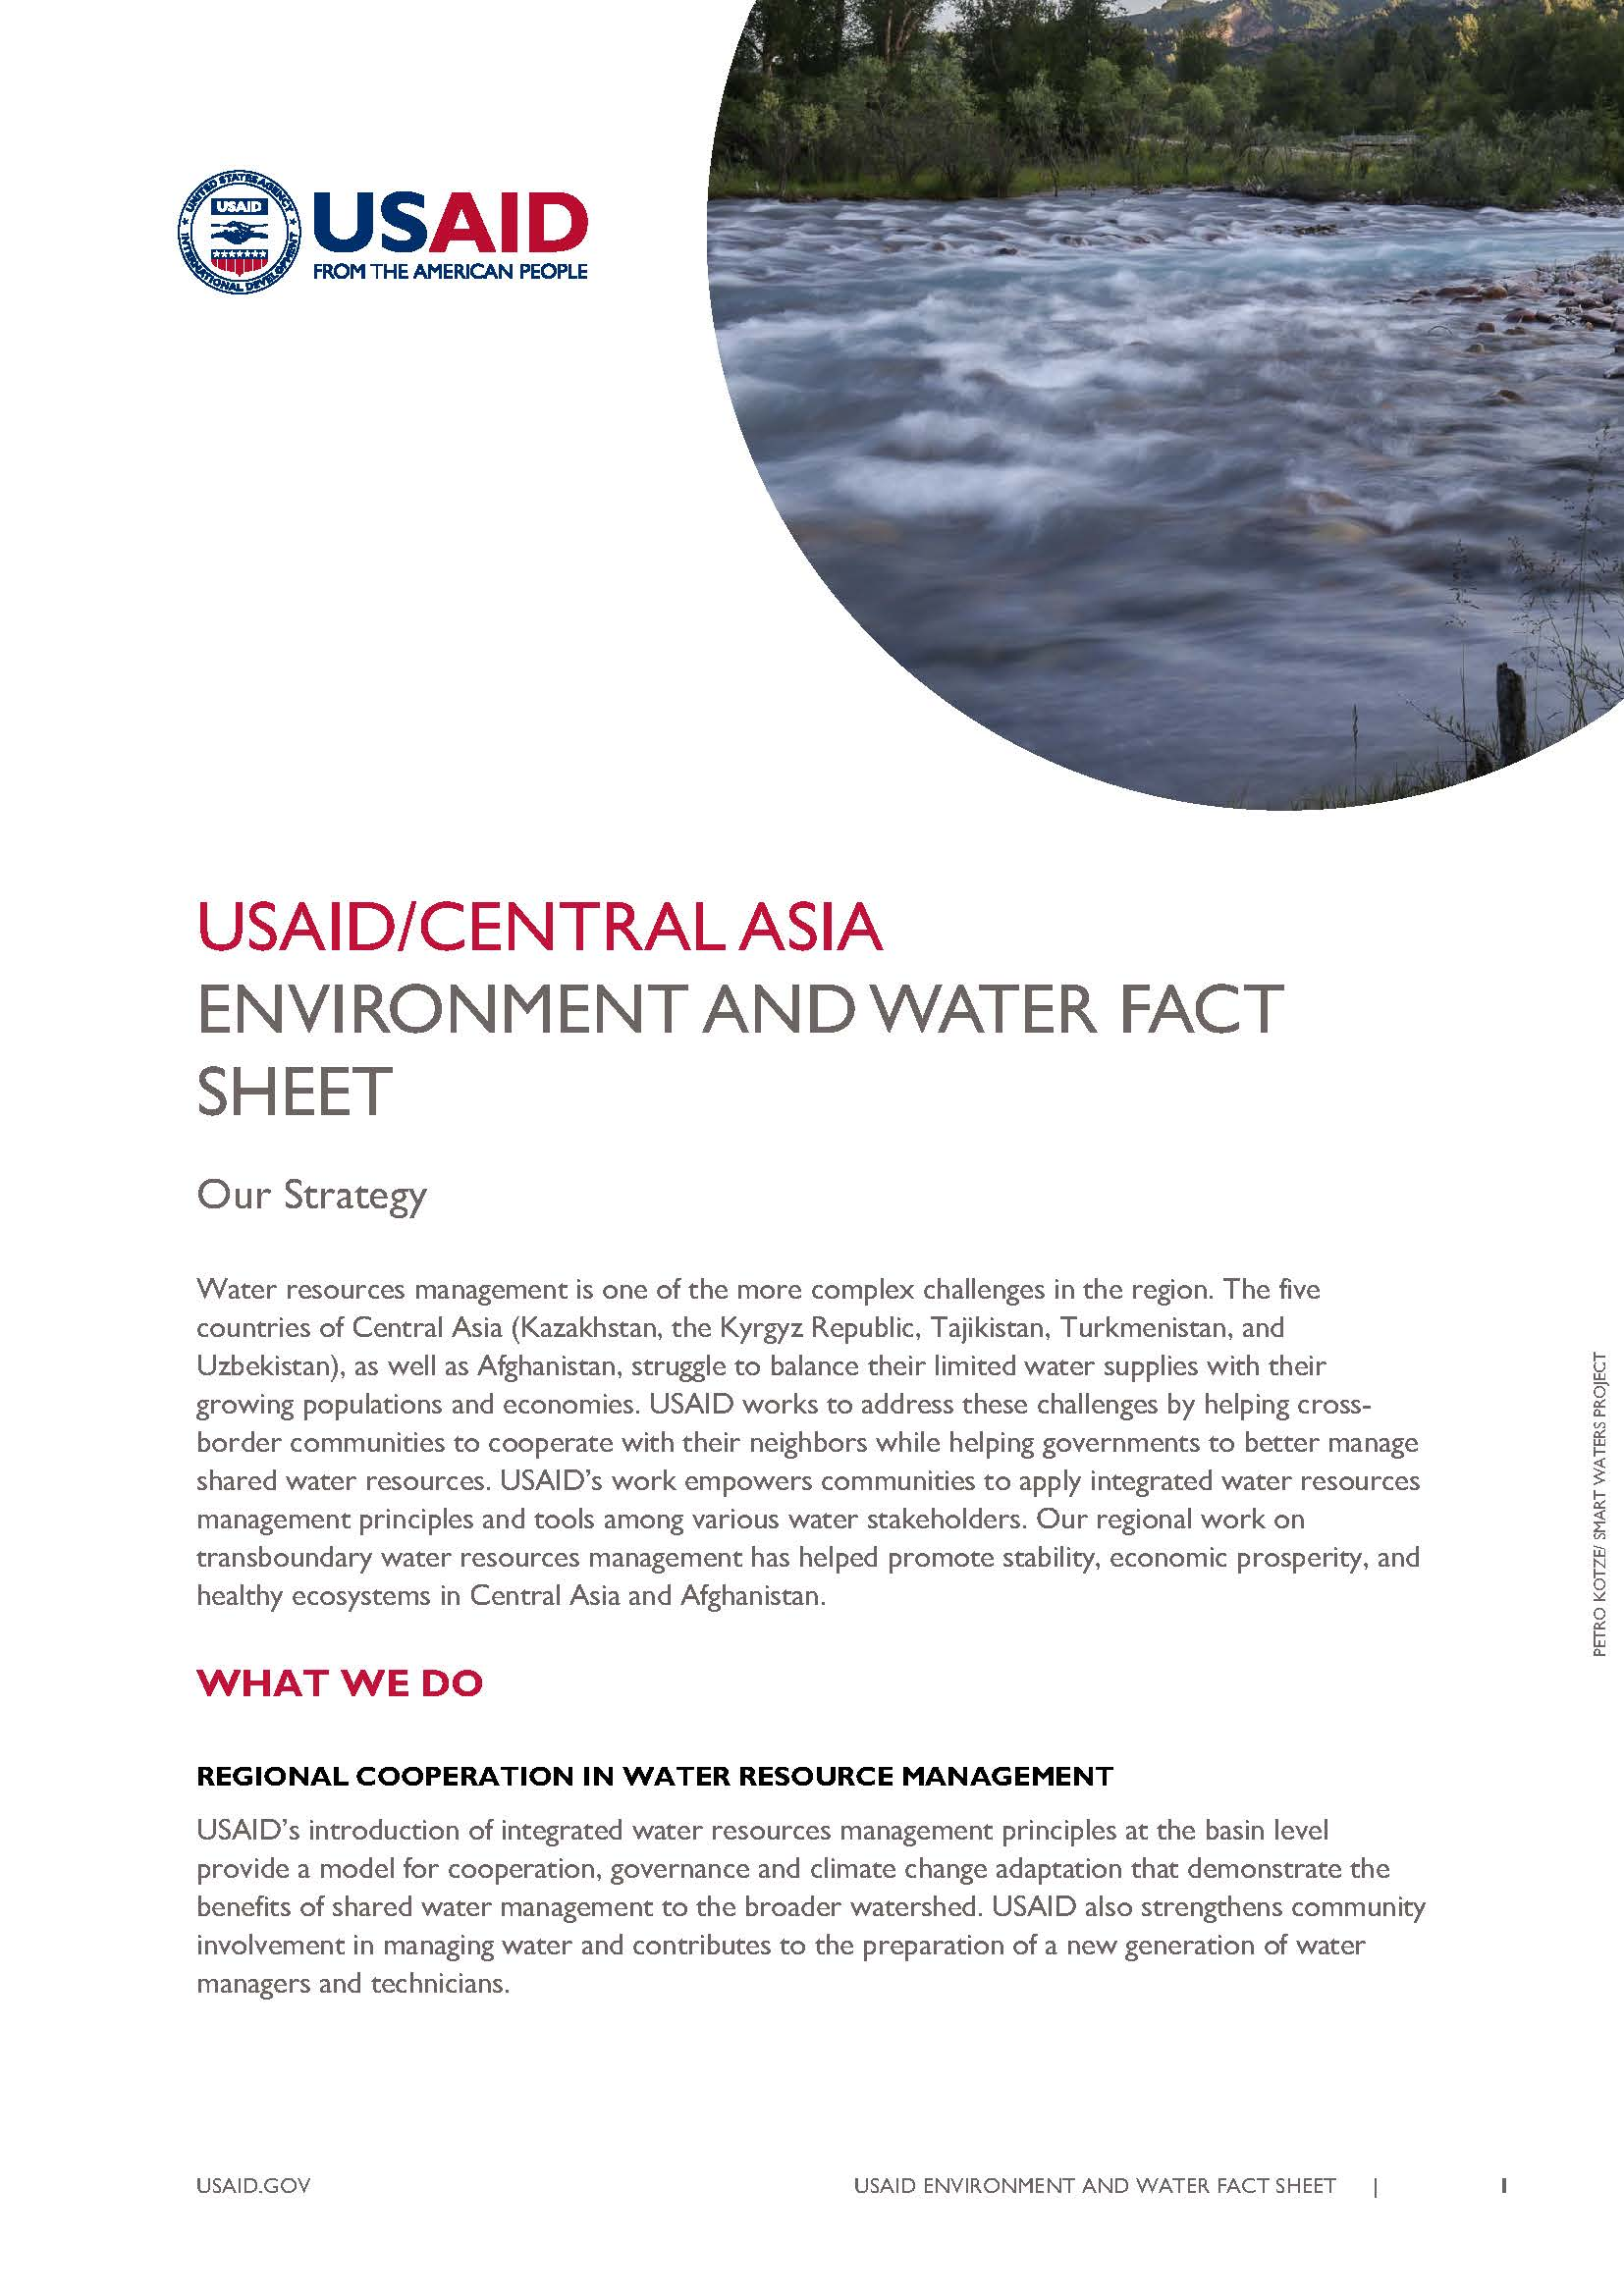 USAID/Central Asia Environment and Water Fact Sheet